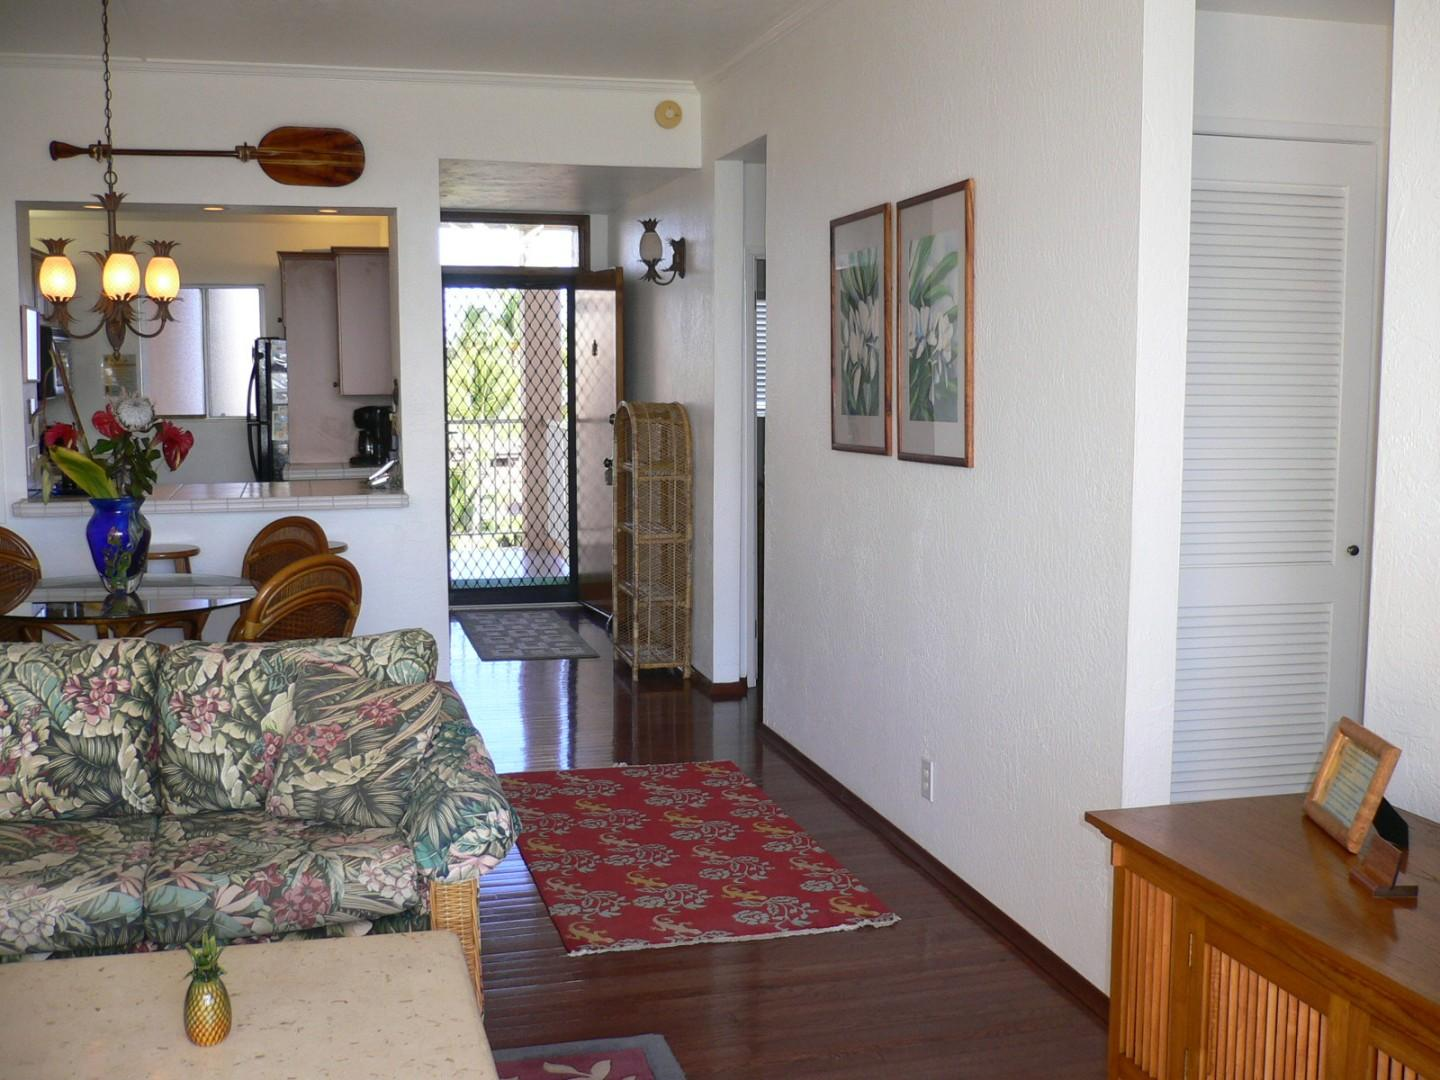 Living space, looking toward the kitchen.